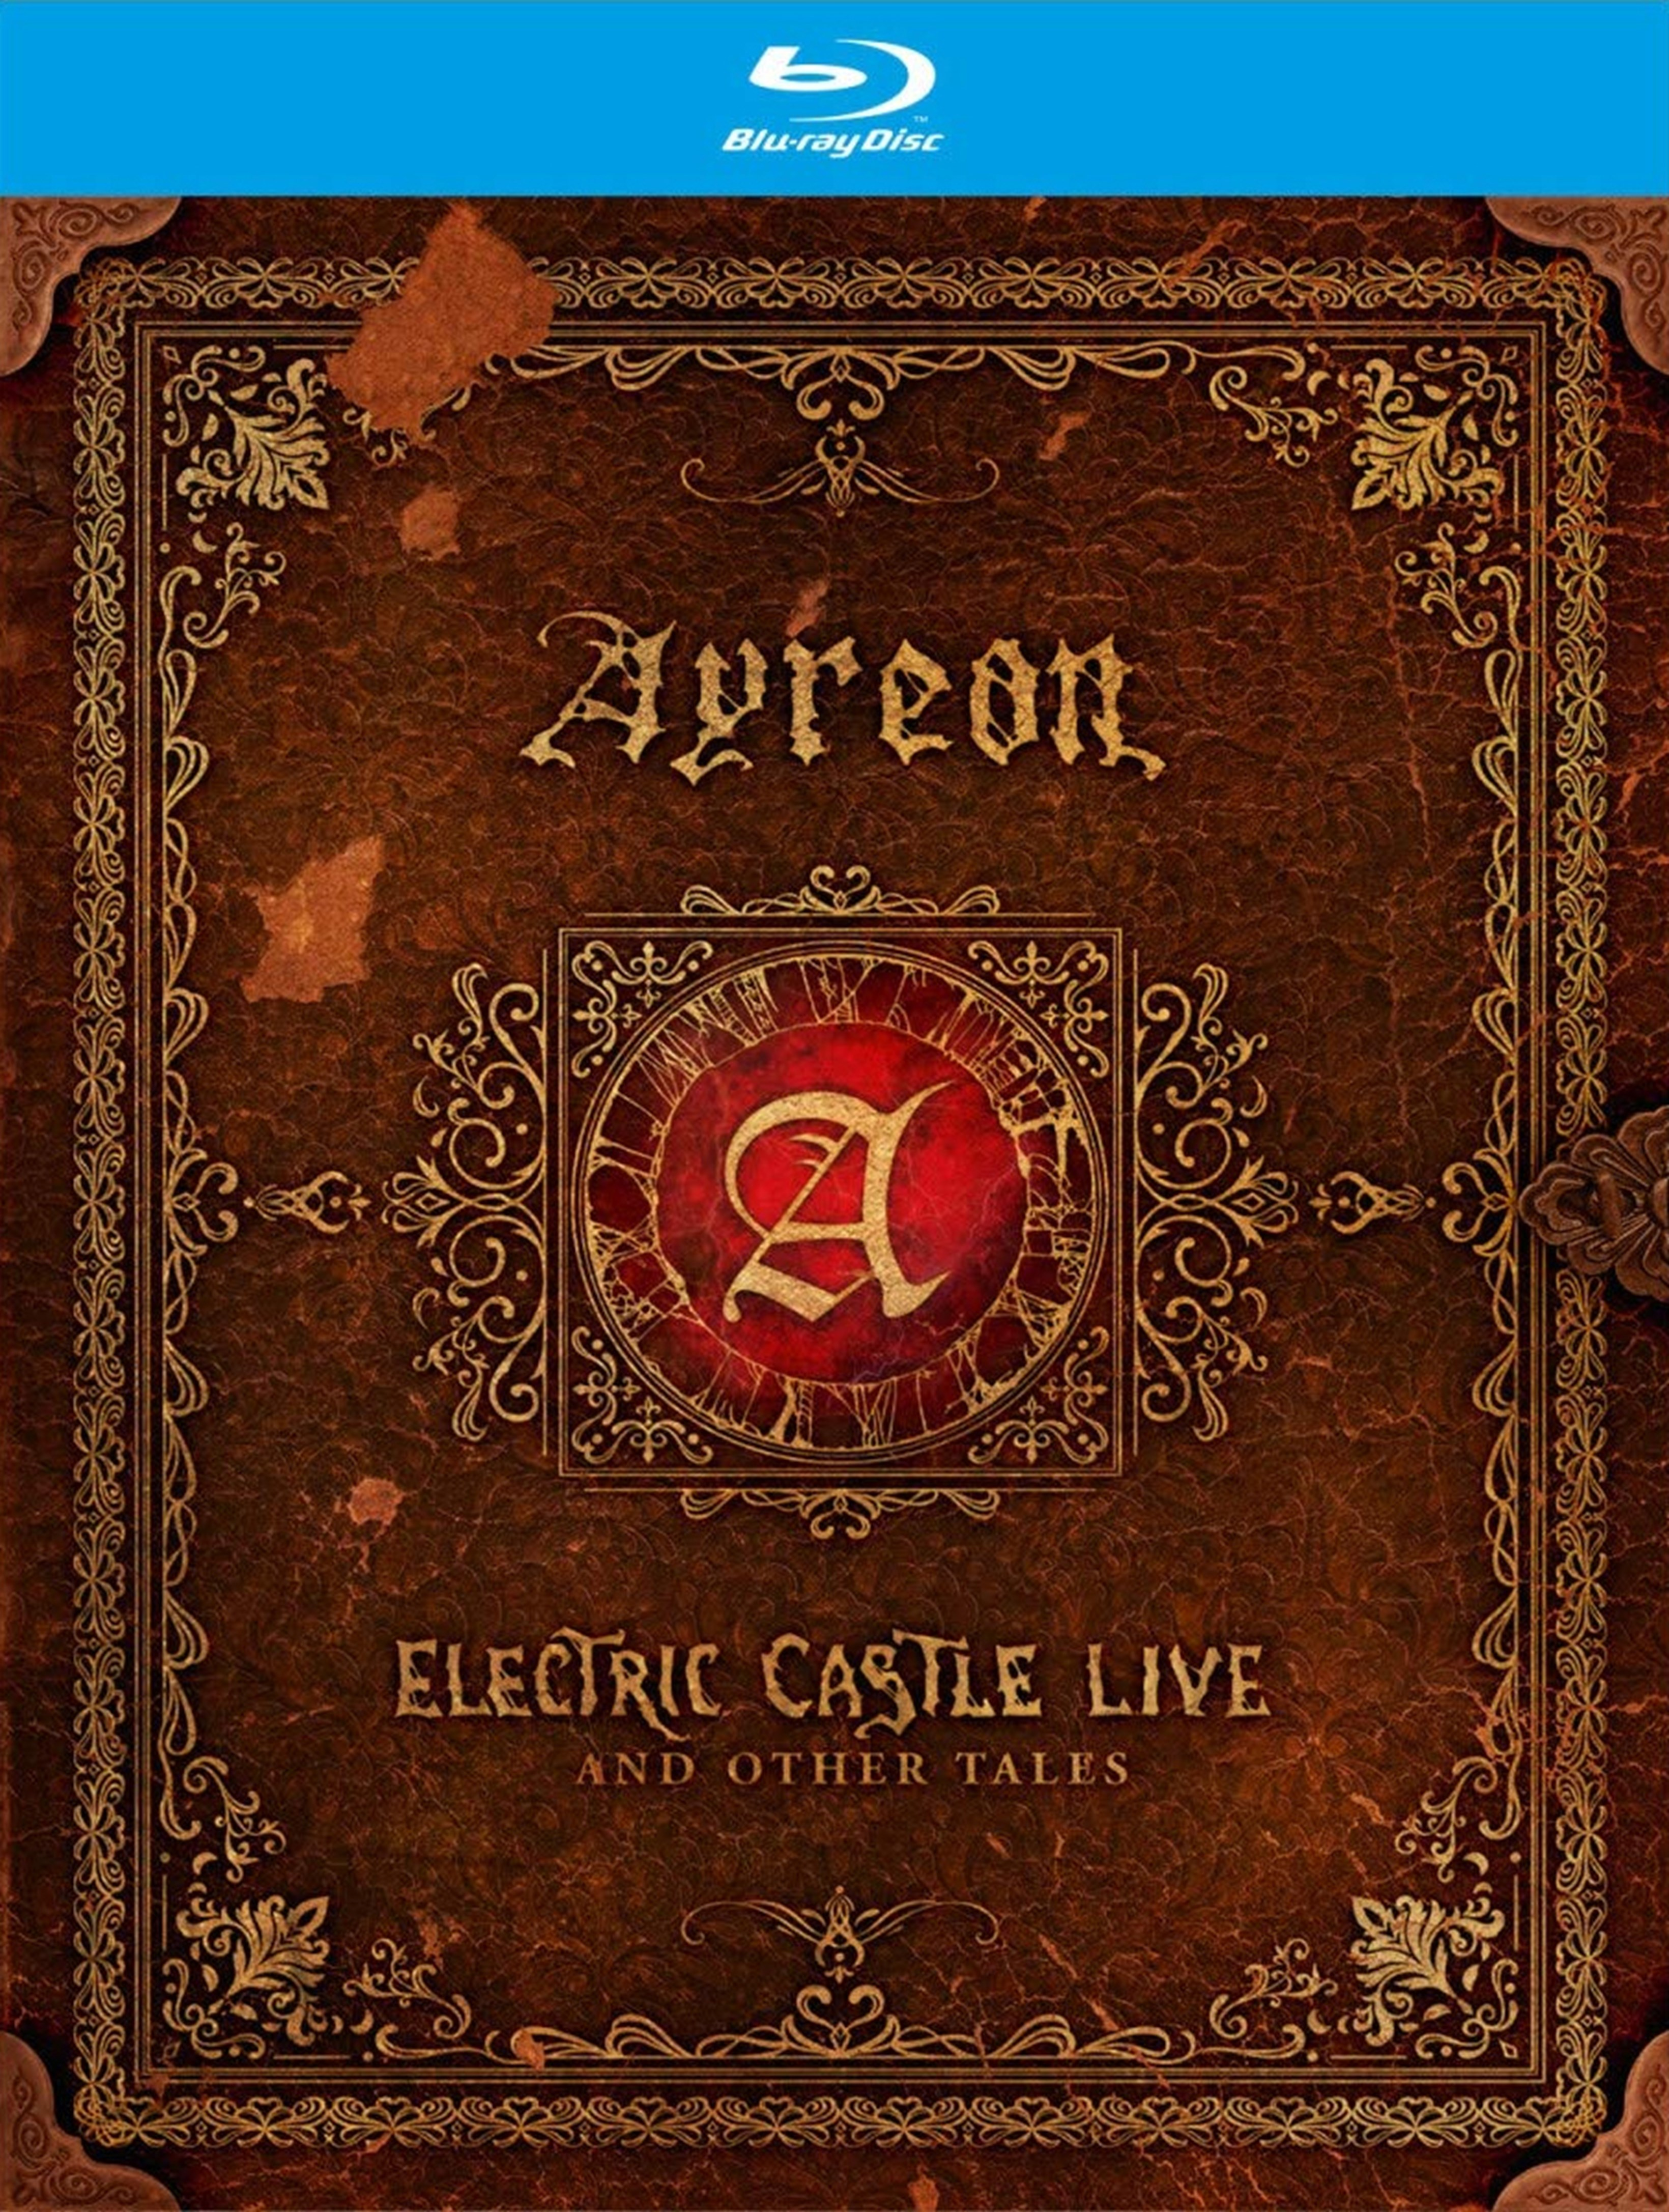 Ayreon: Electric Castle Live and Other Tales - 1